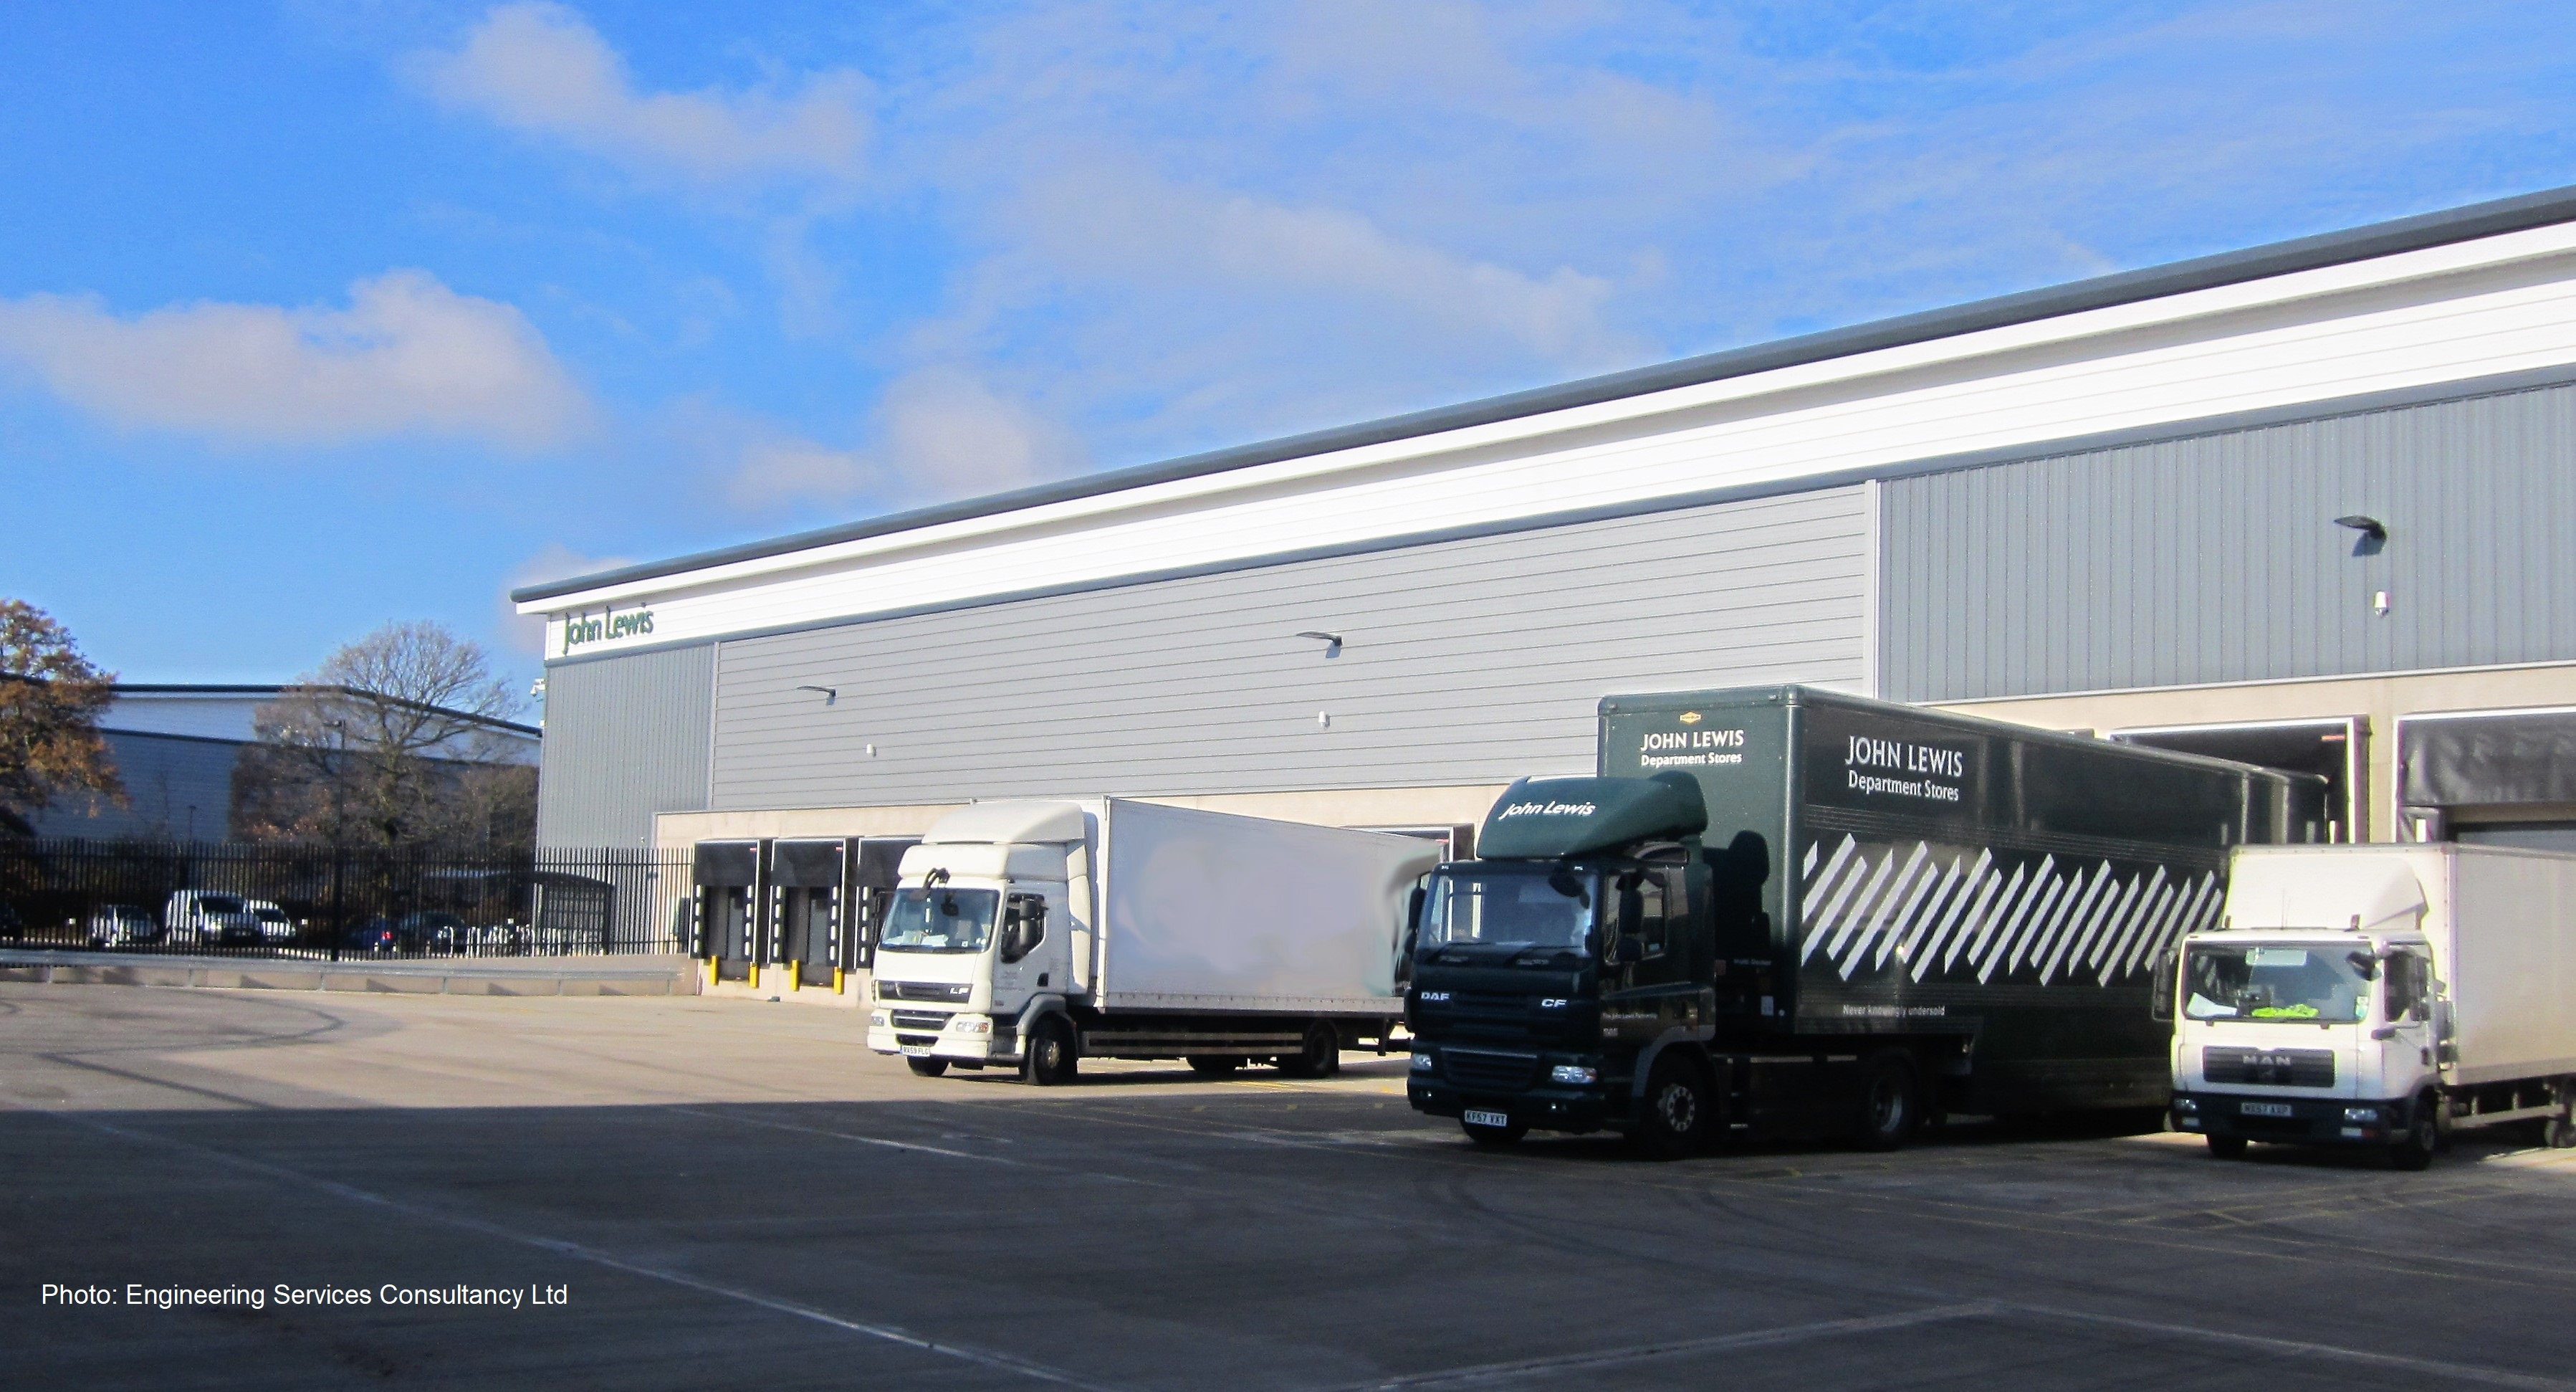 John Lewis Partnership Distribution Centre, Solihull